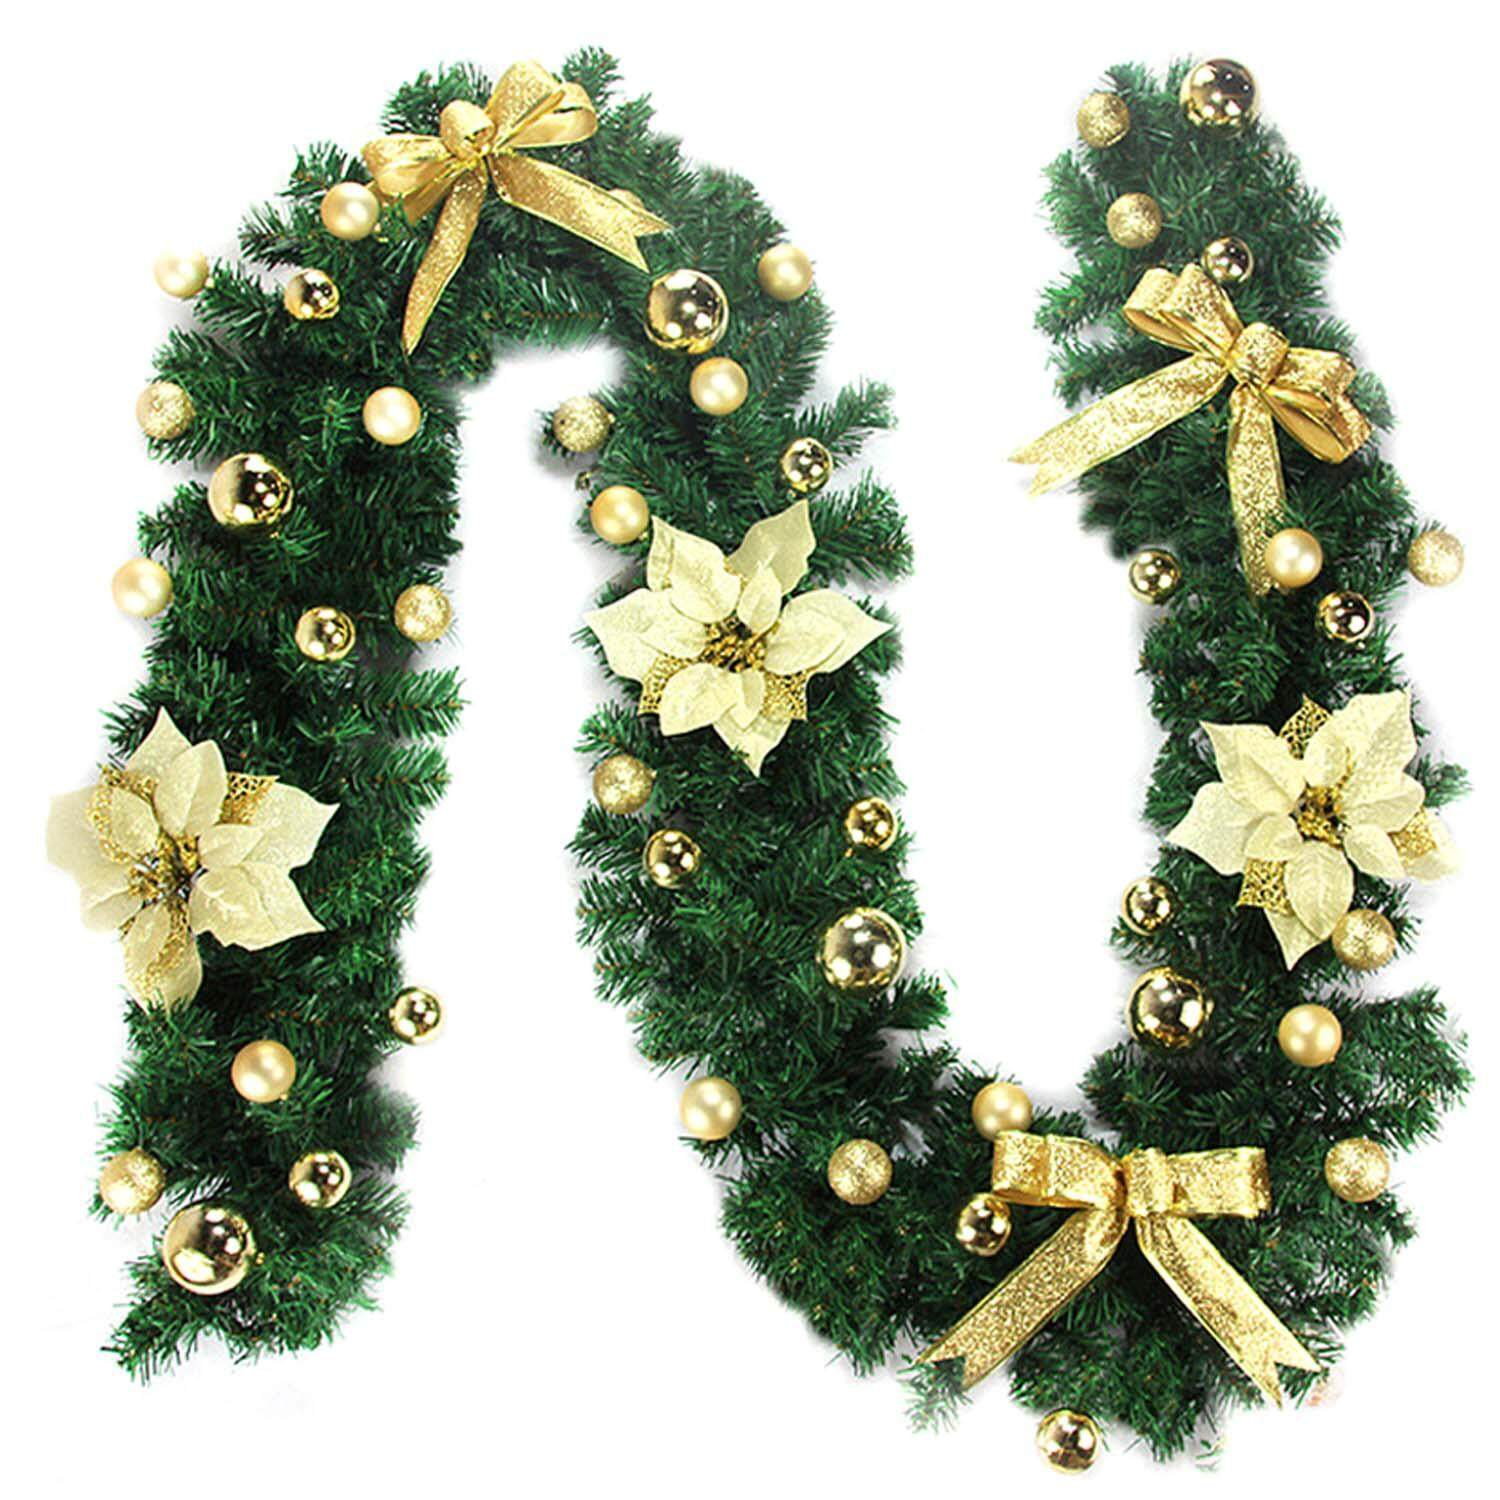 2.7m Christmas Artificial Garland Vine Ornament Decoration for Home Shop Supermarket Mall Party Wall Window Outdoor